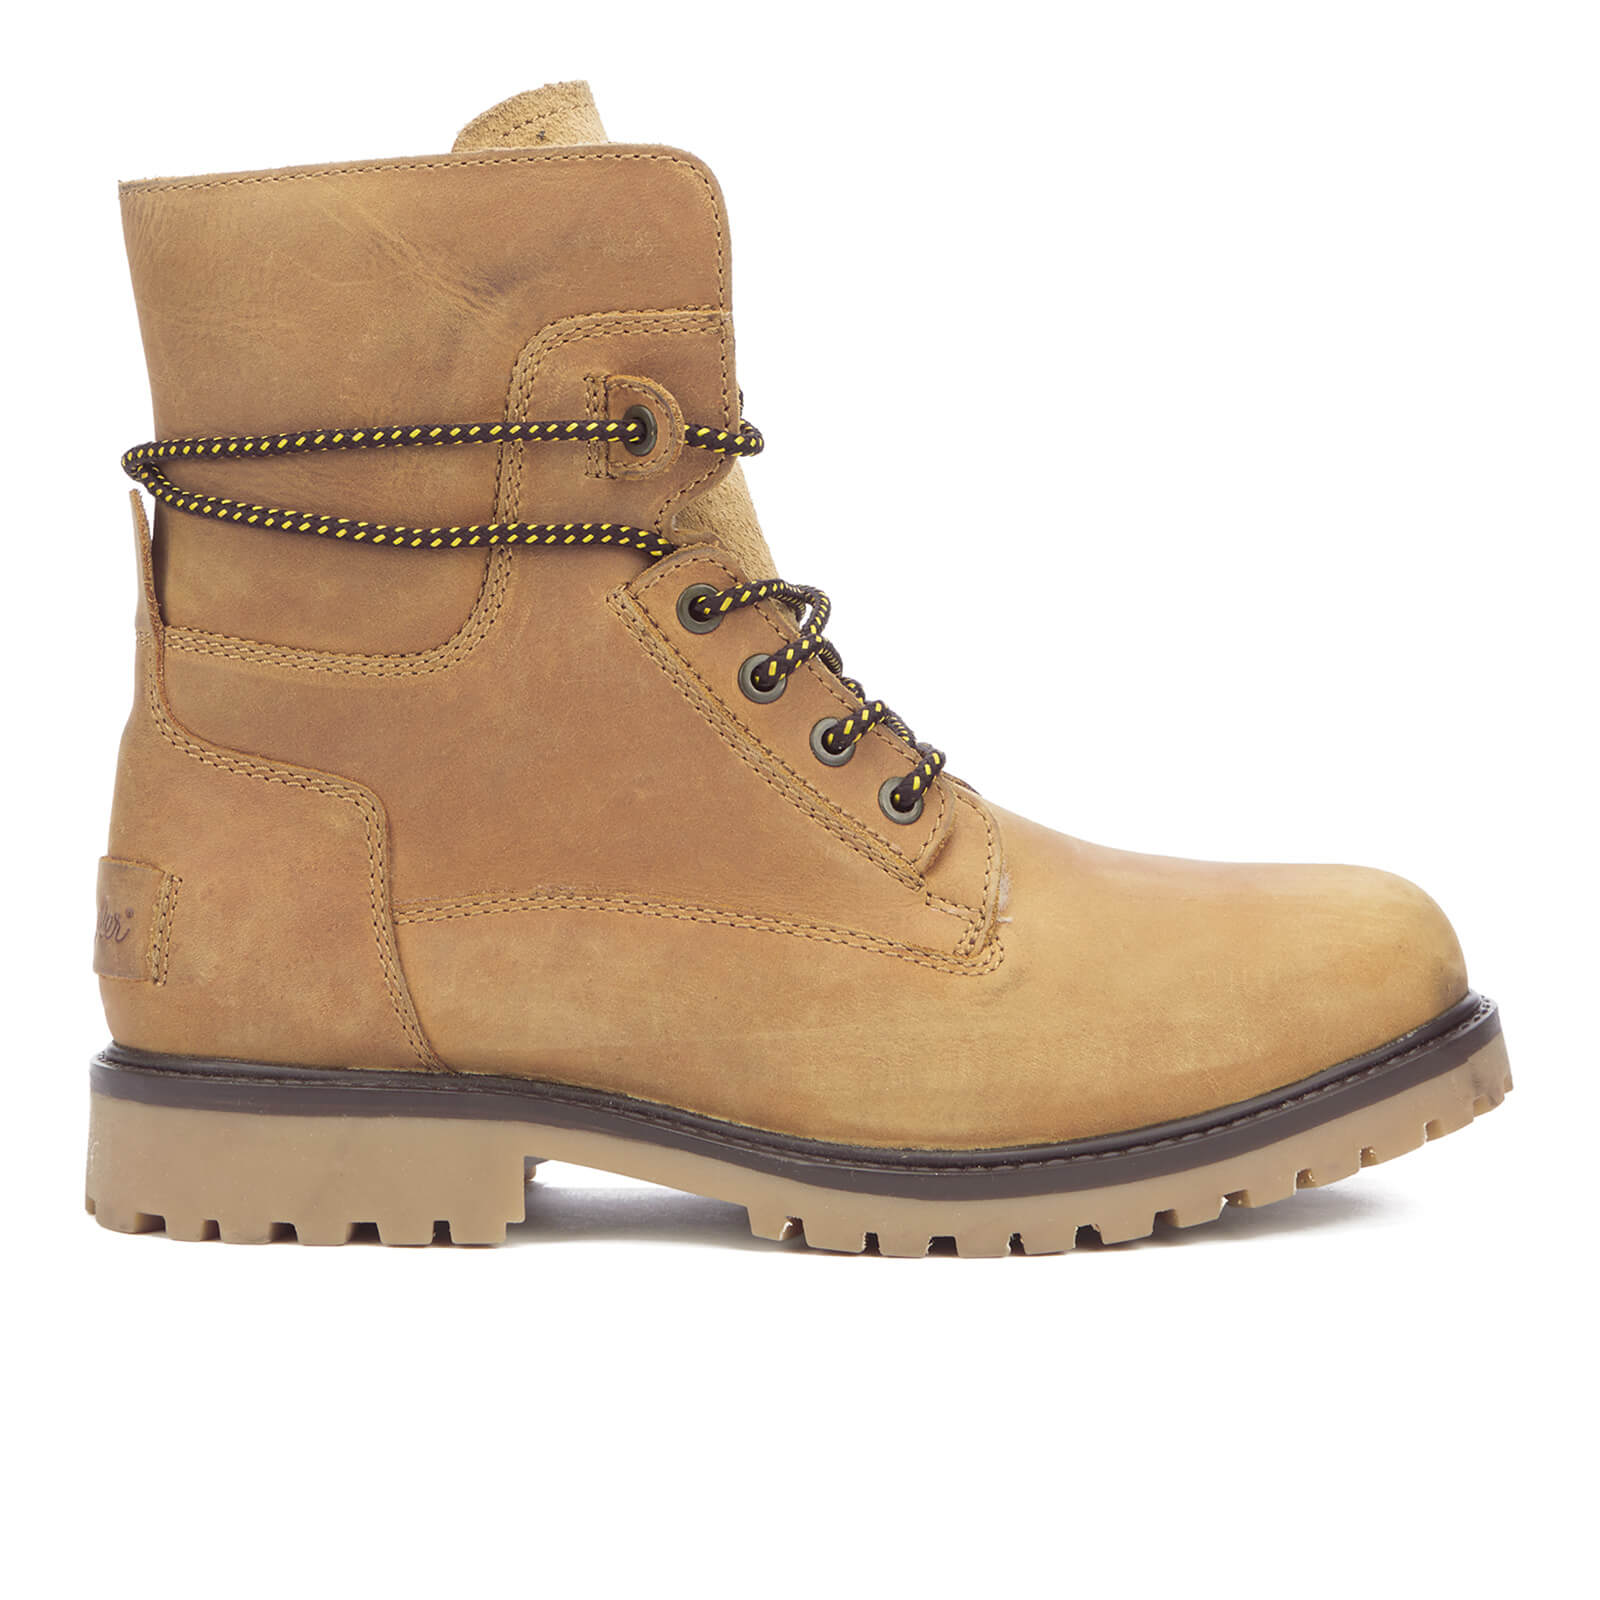 Bottines Homme Aviator Roll Down Wrangler -Camel